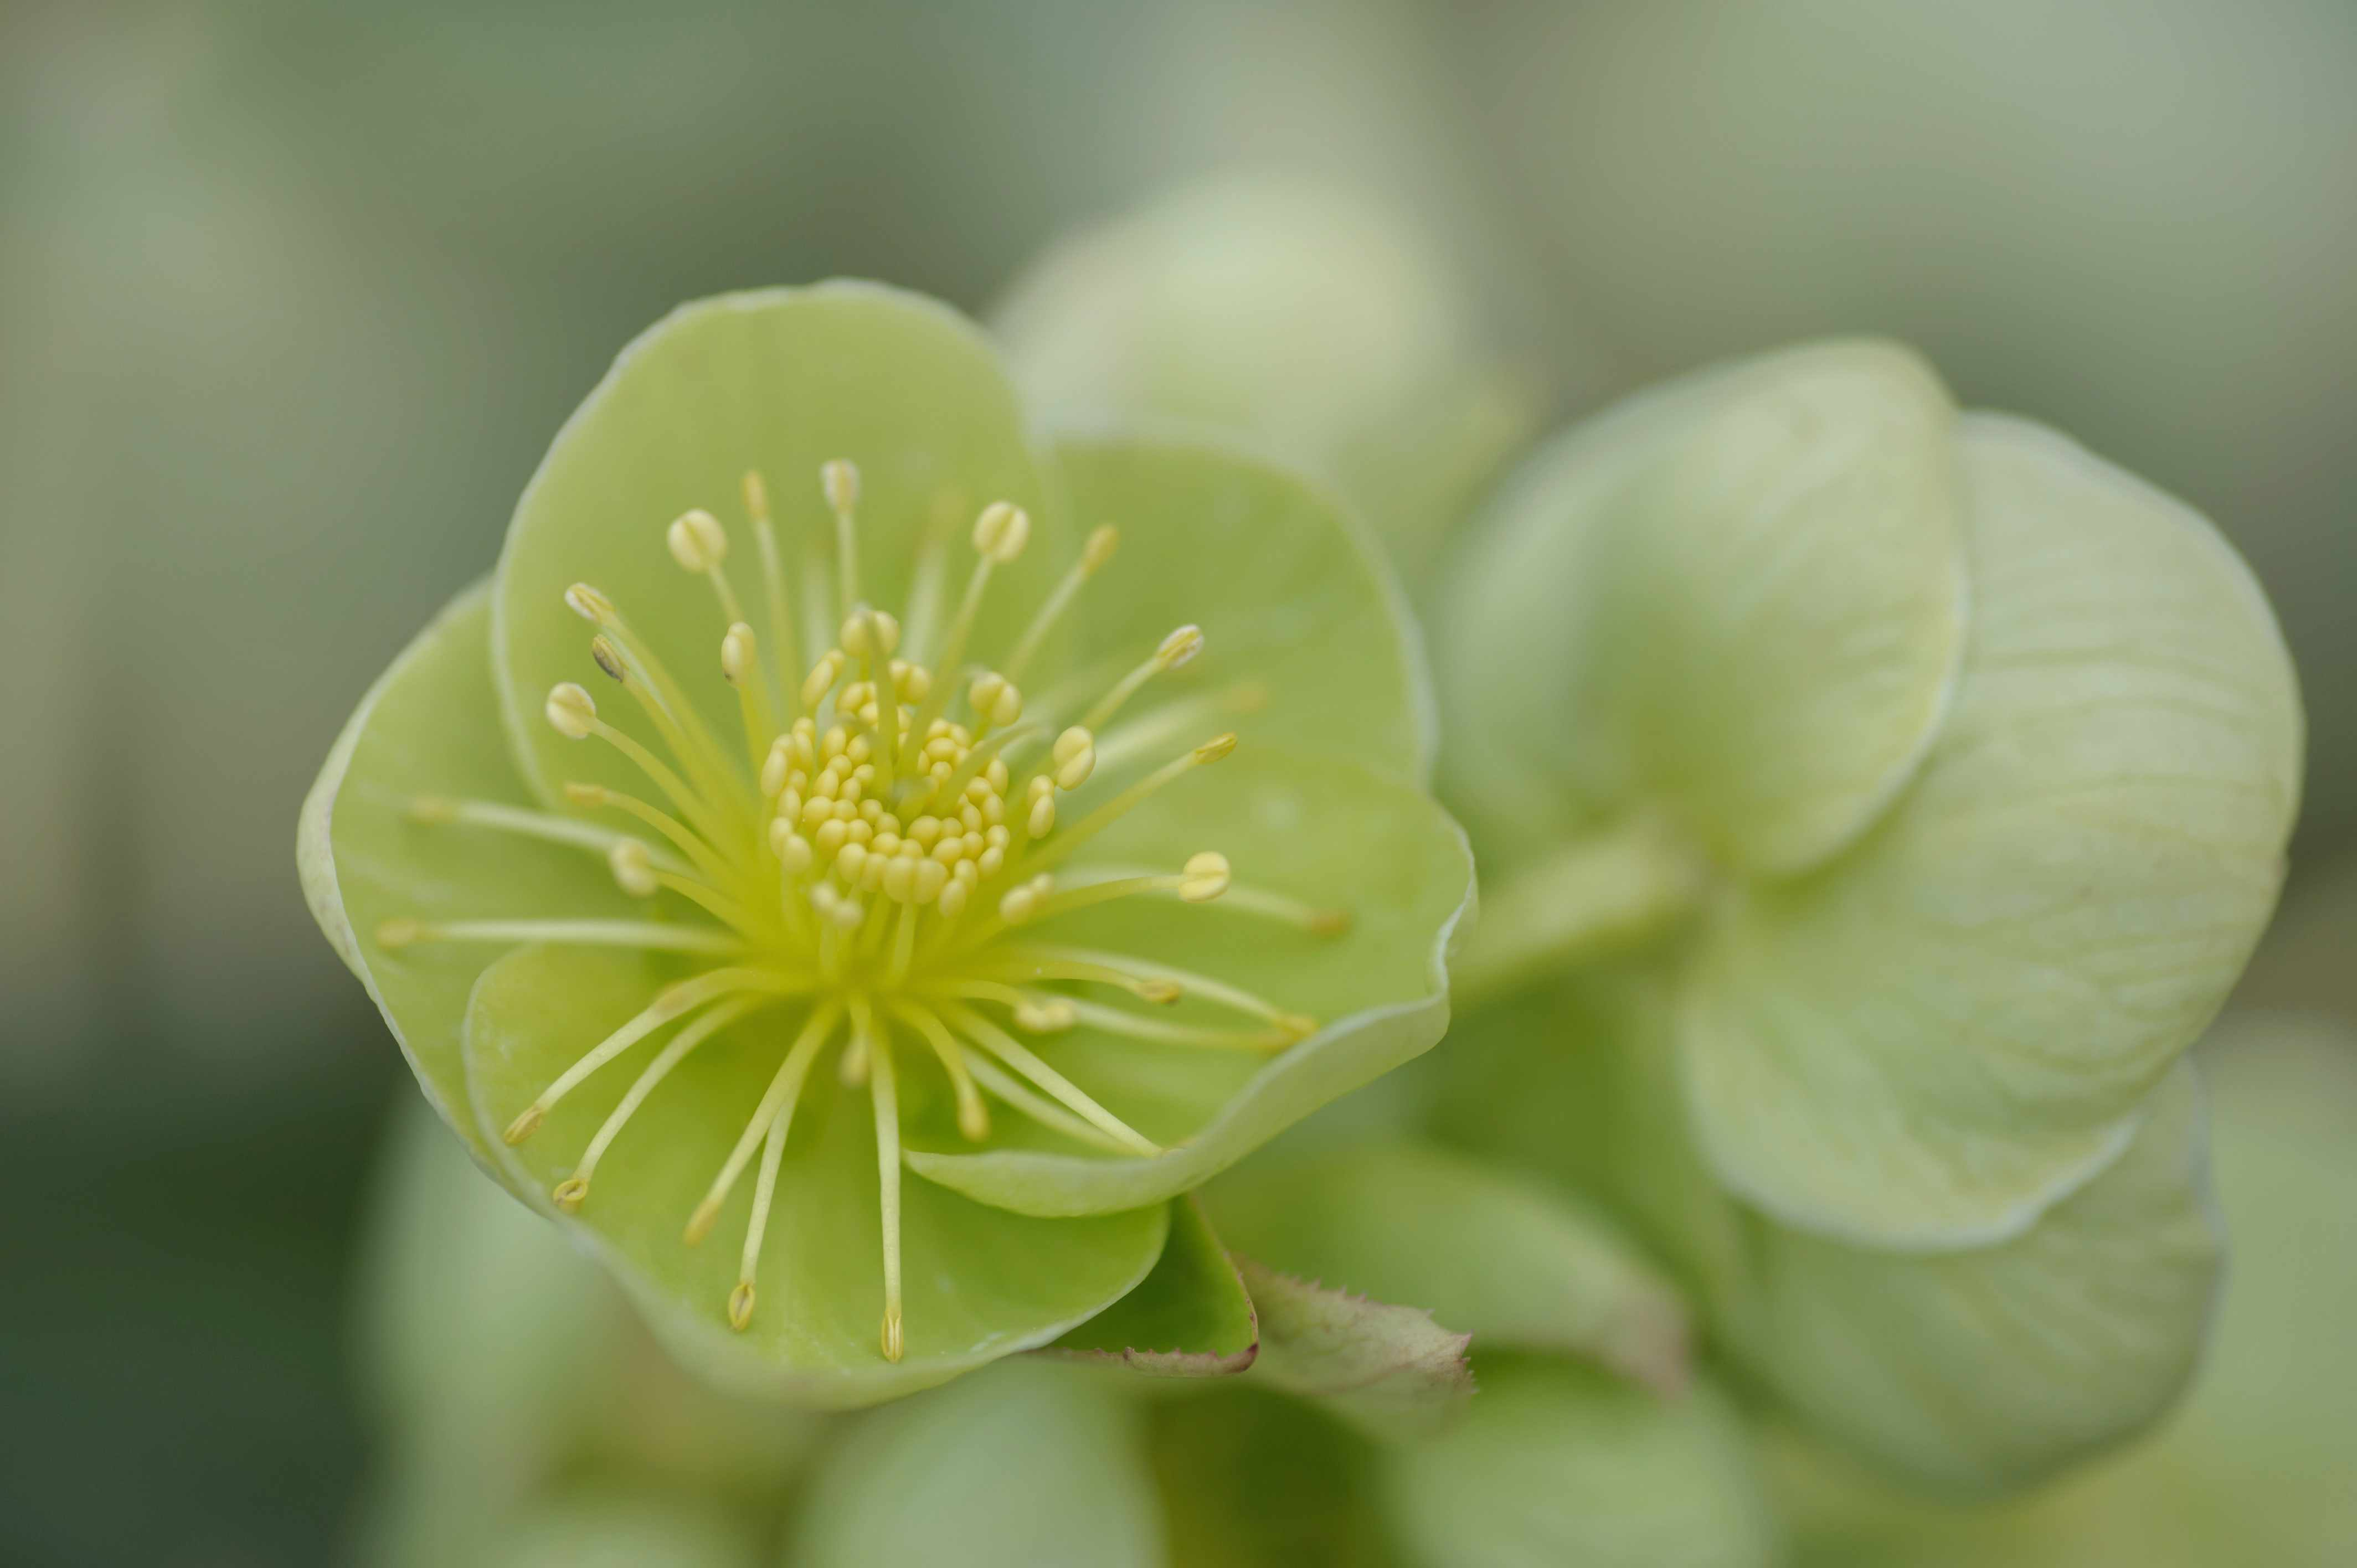 Holly-leaved hellebore with green flower closeup